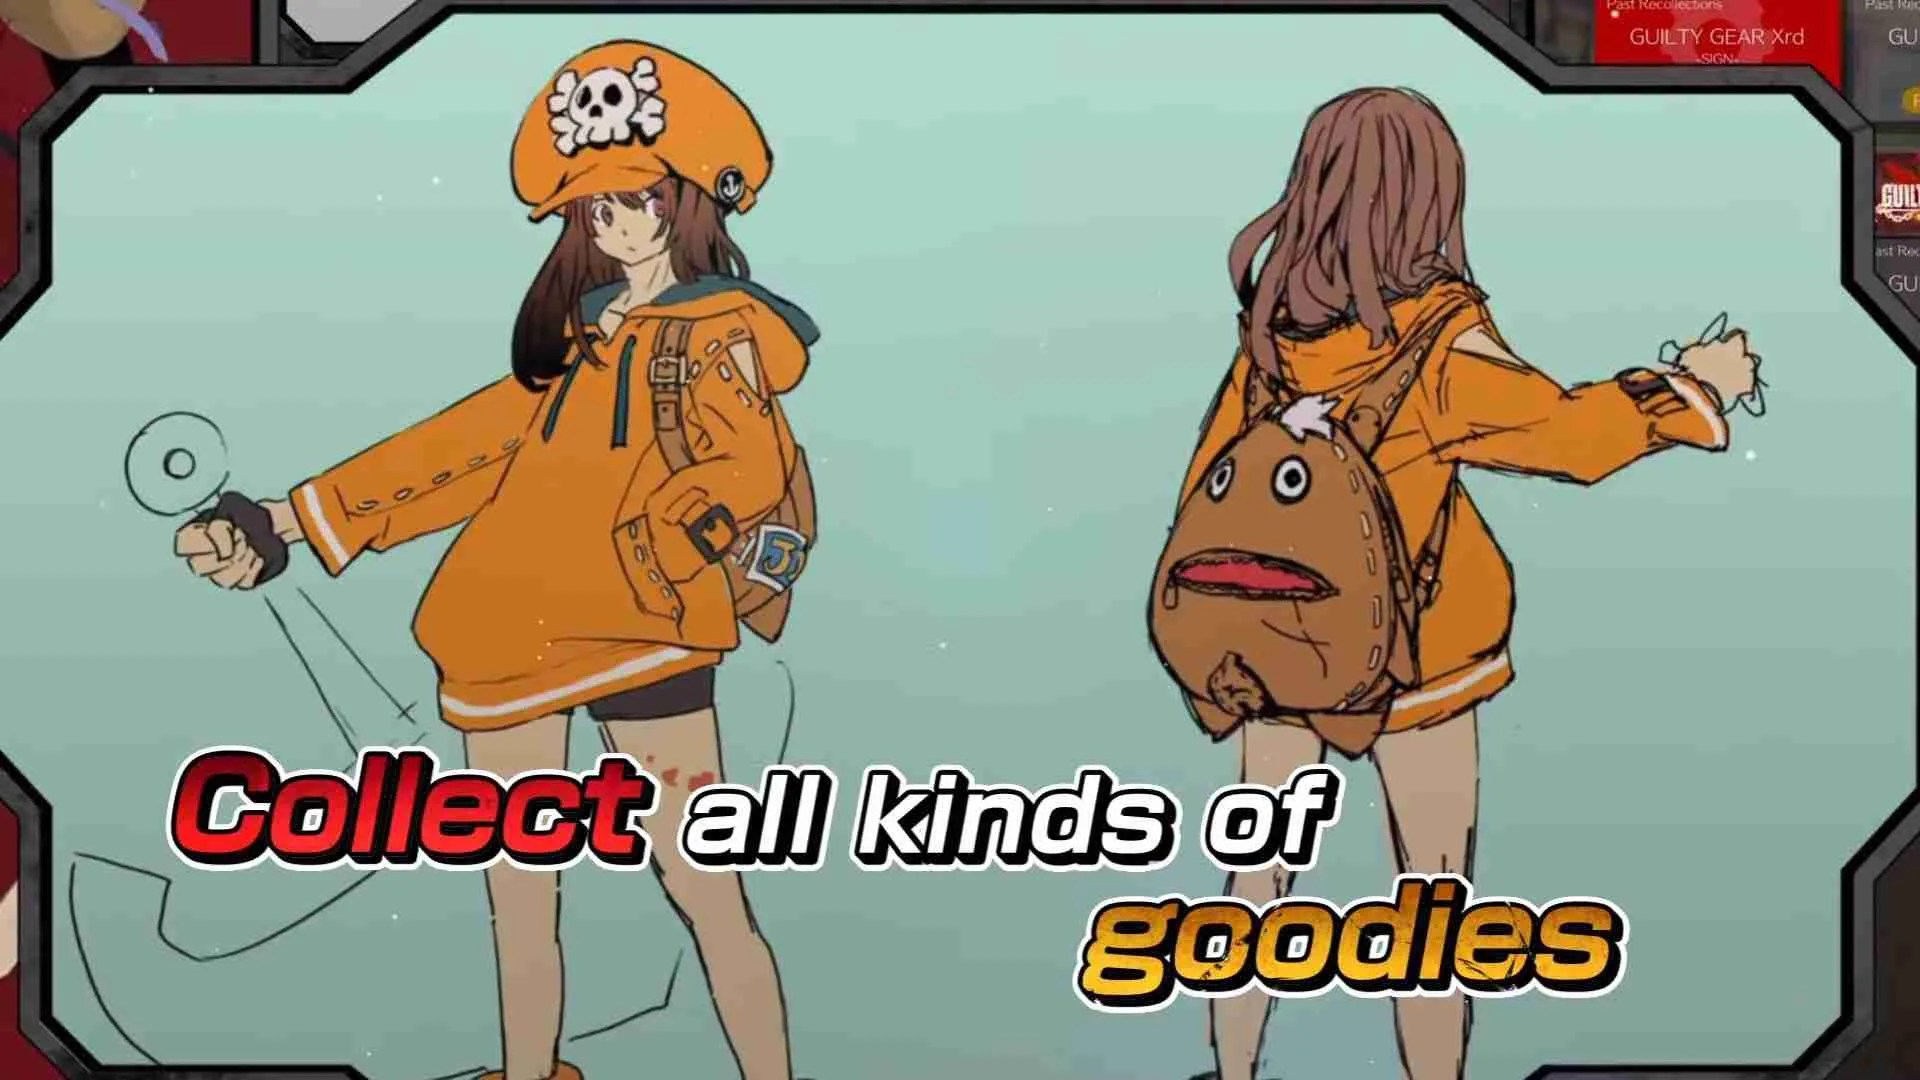 picture of may orange sweater guilty gear